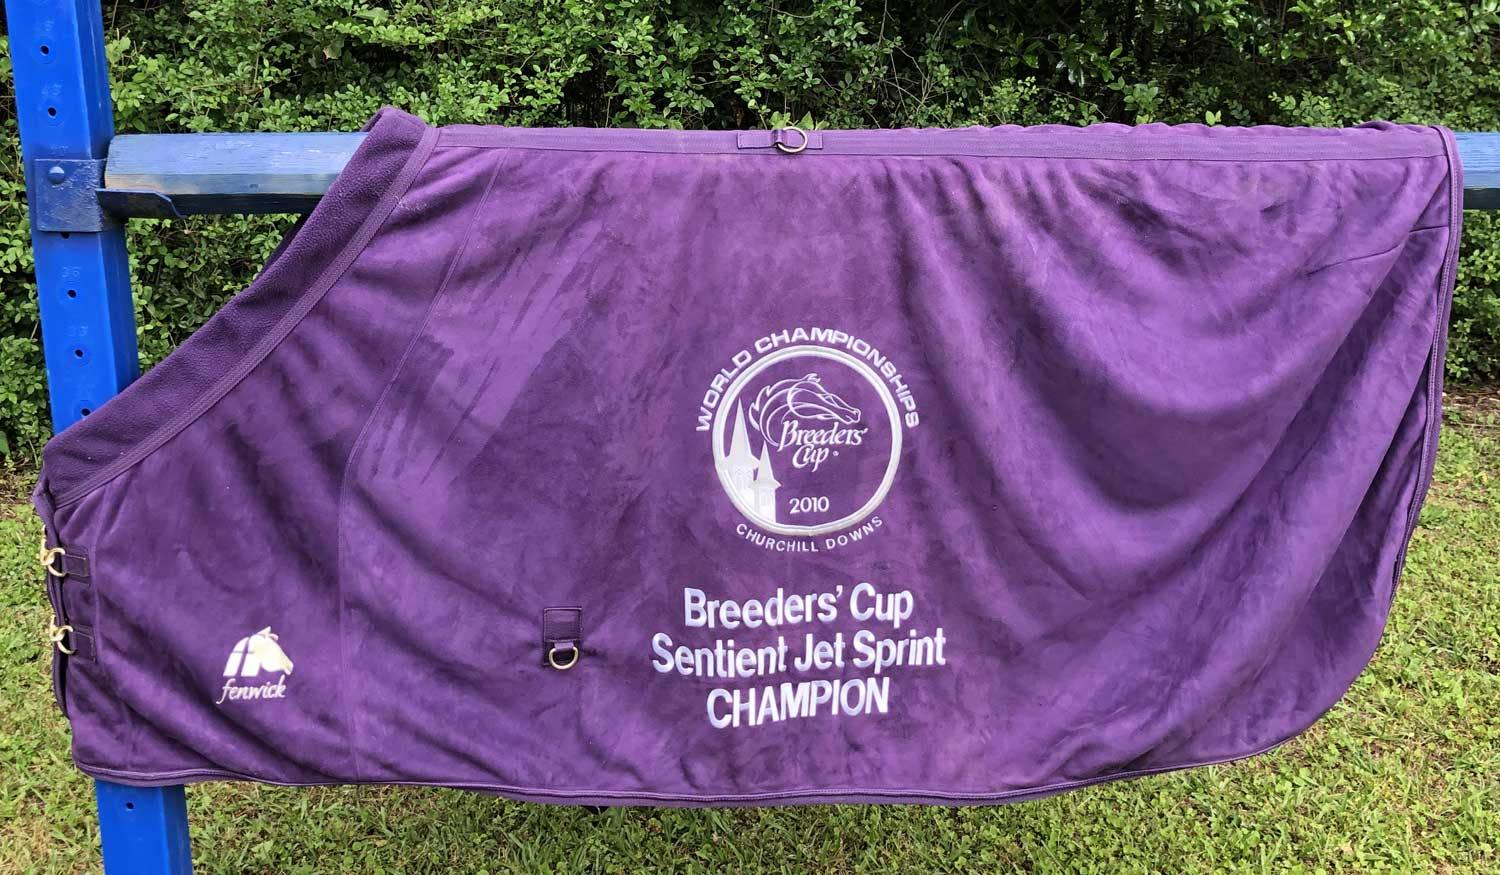 "★ EquSuede 82"" Cooler/Blanket Breeders' Cup 2010  Sentient Jet Sprint ★ Year of Big Drama & Dubai Majesty - Fenwick Equestrian"